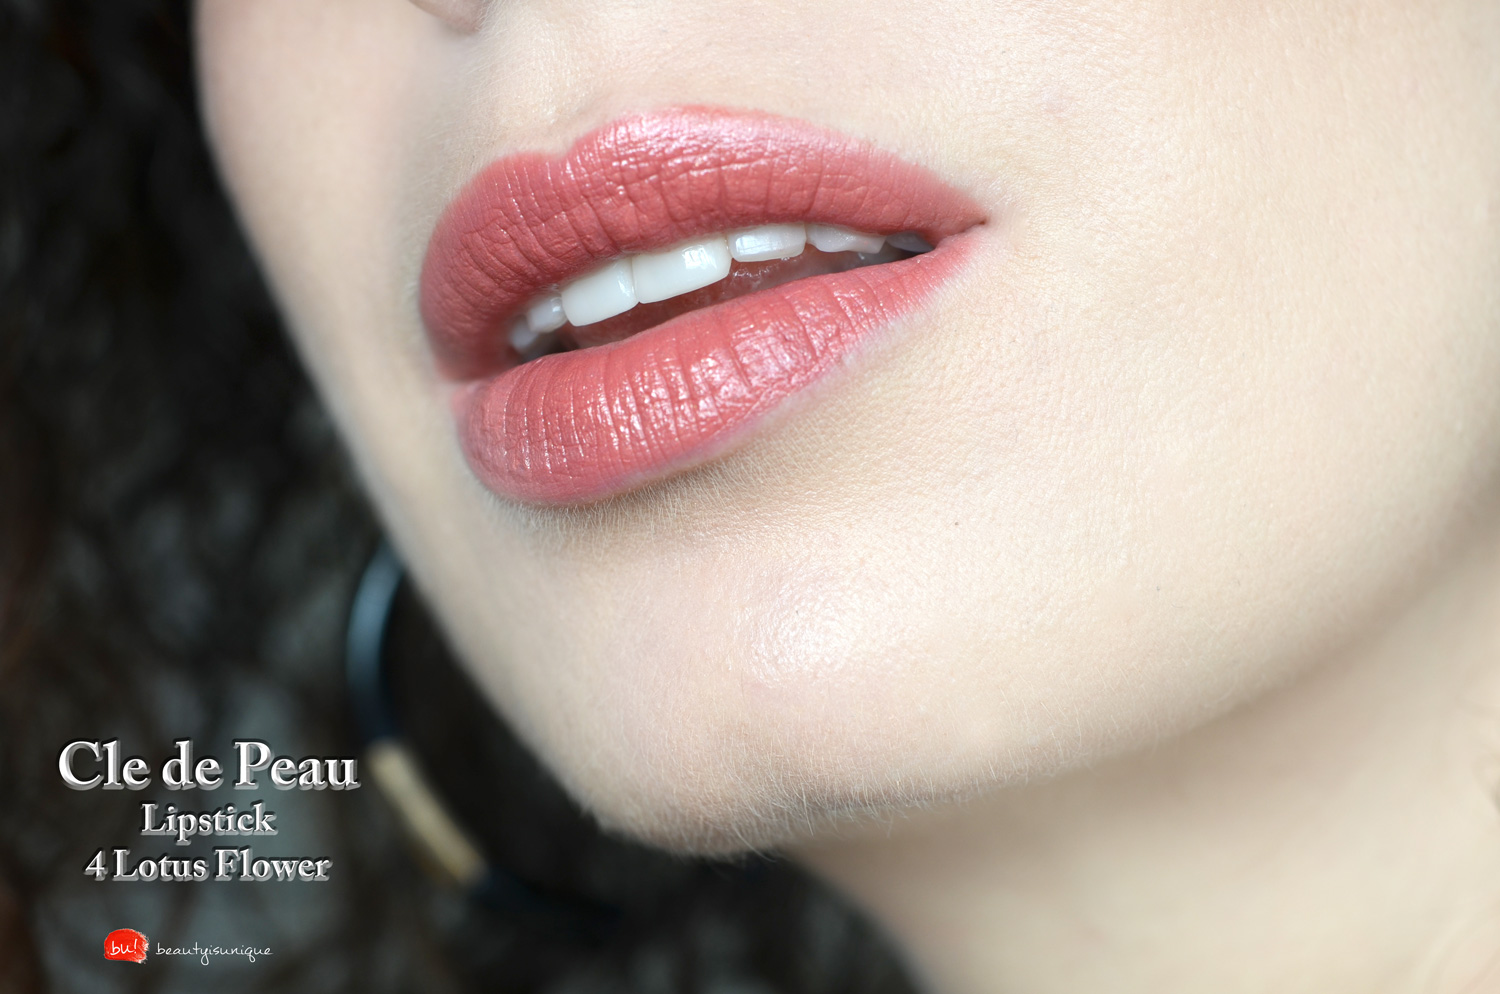 Cle-de-Peau-lipstick-lotus-flower-swatches